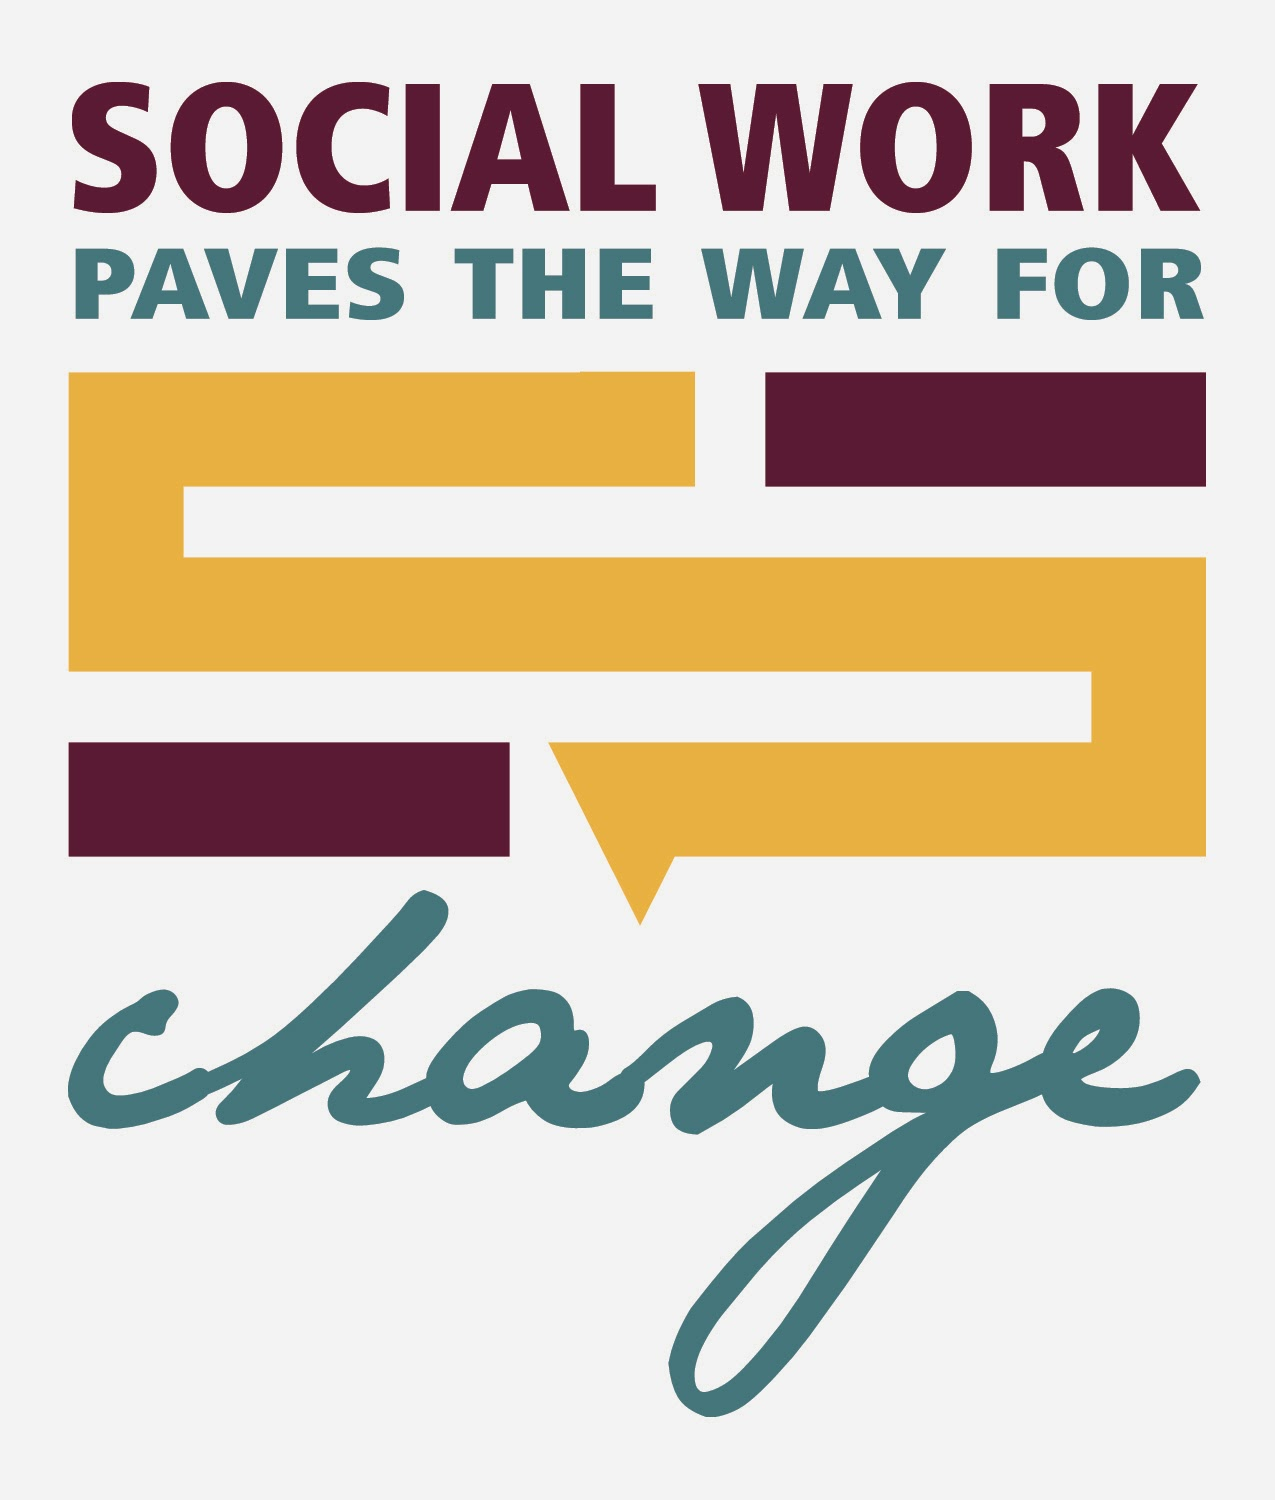 Celebrating the Social Work Profession 2015